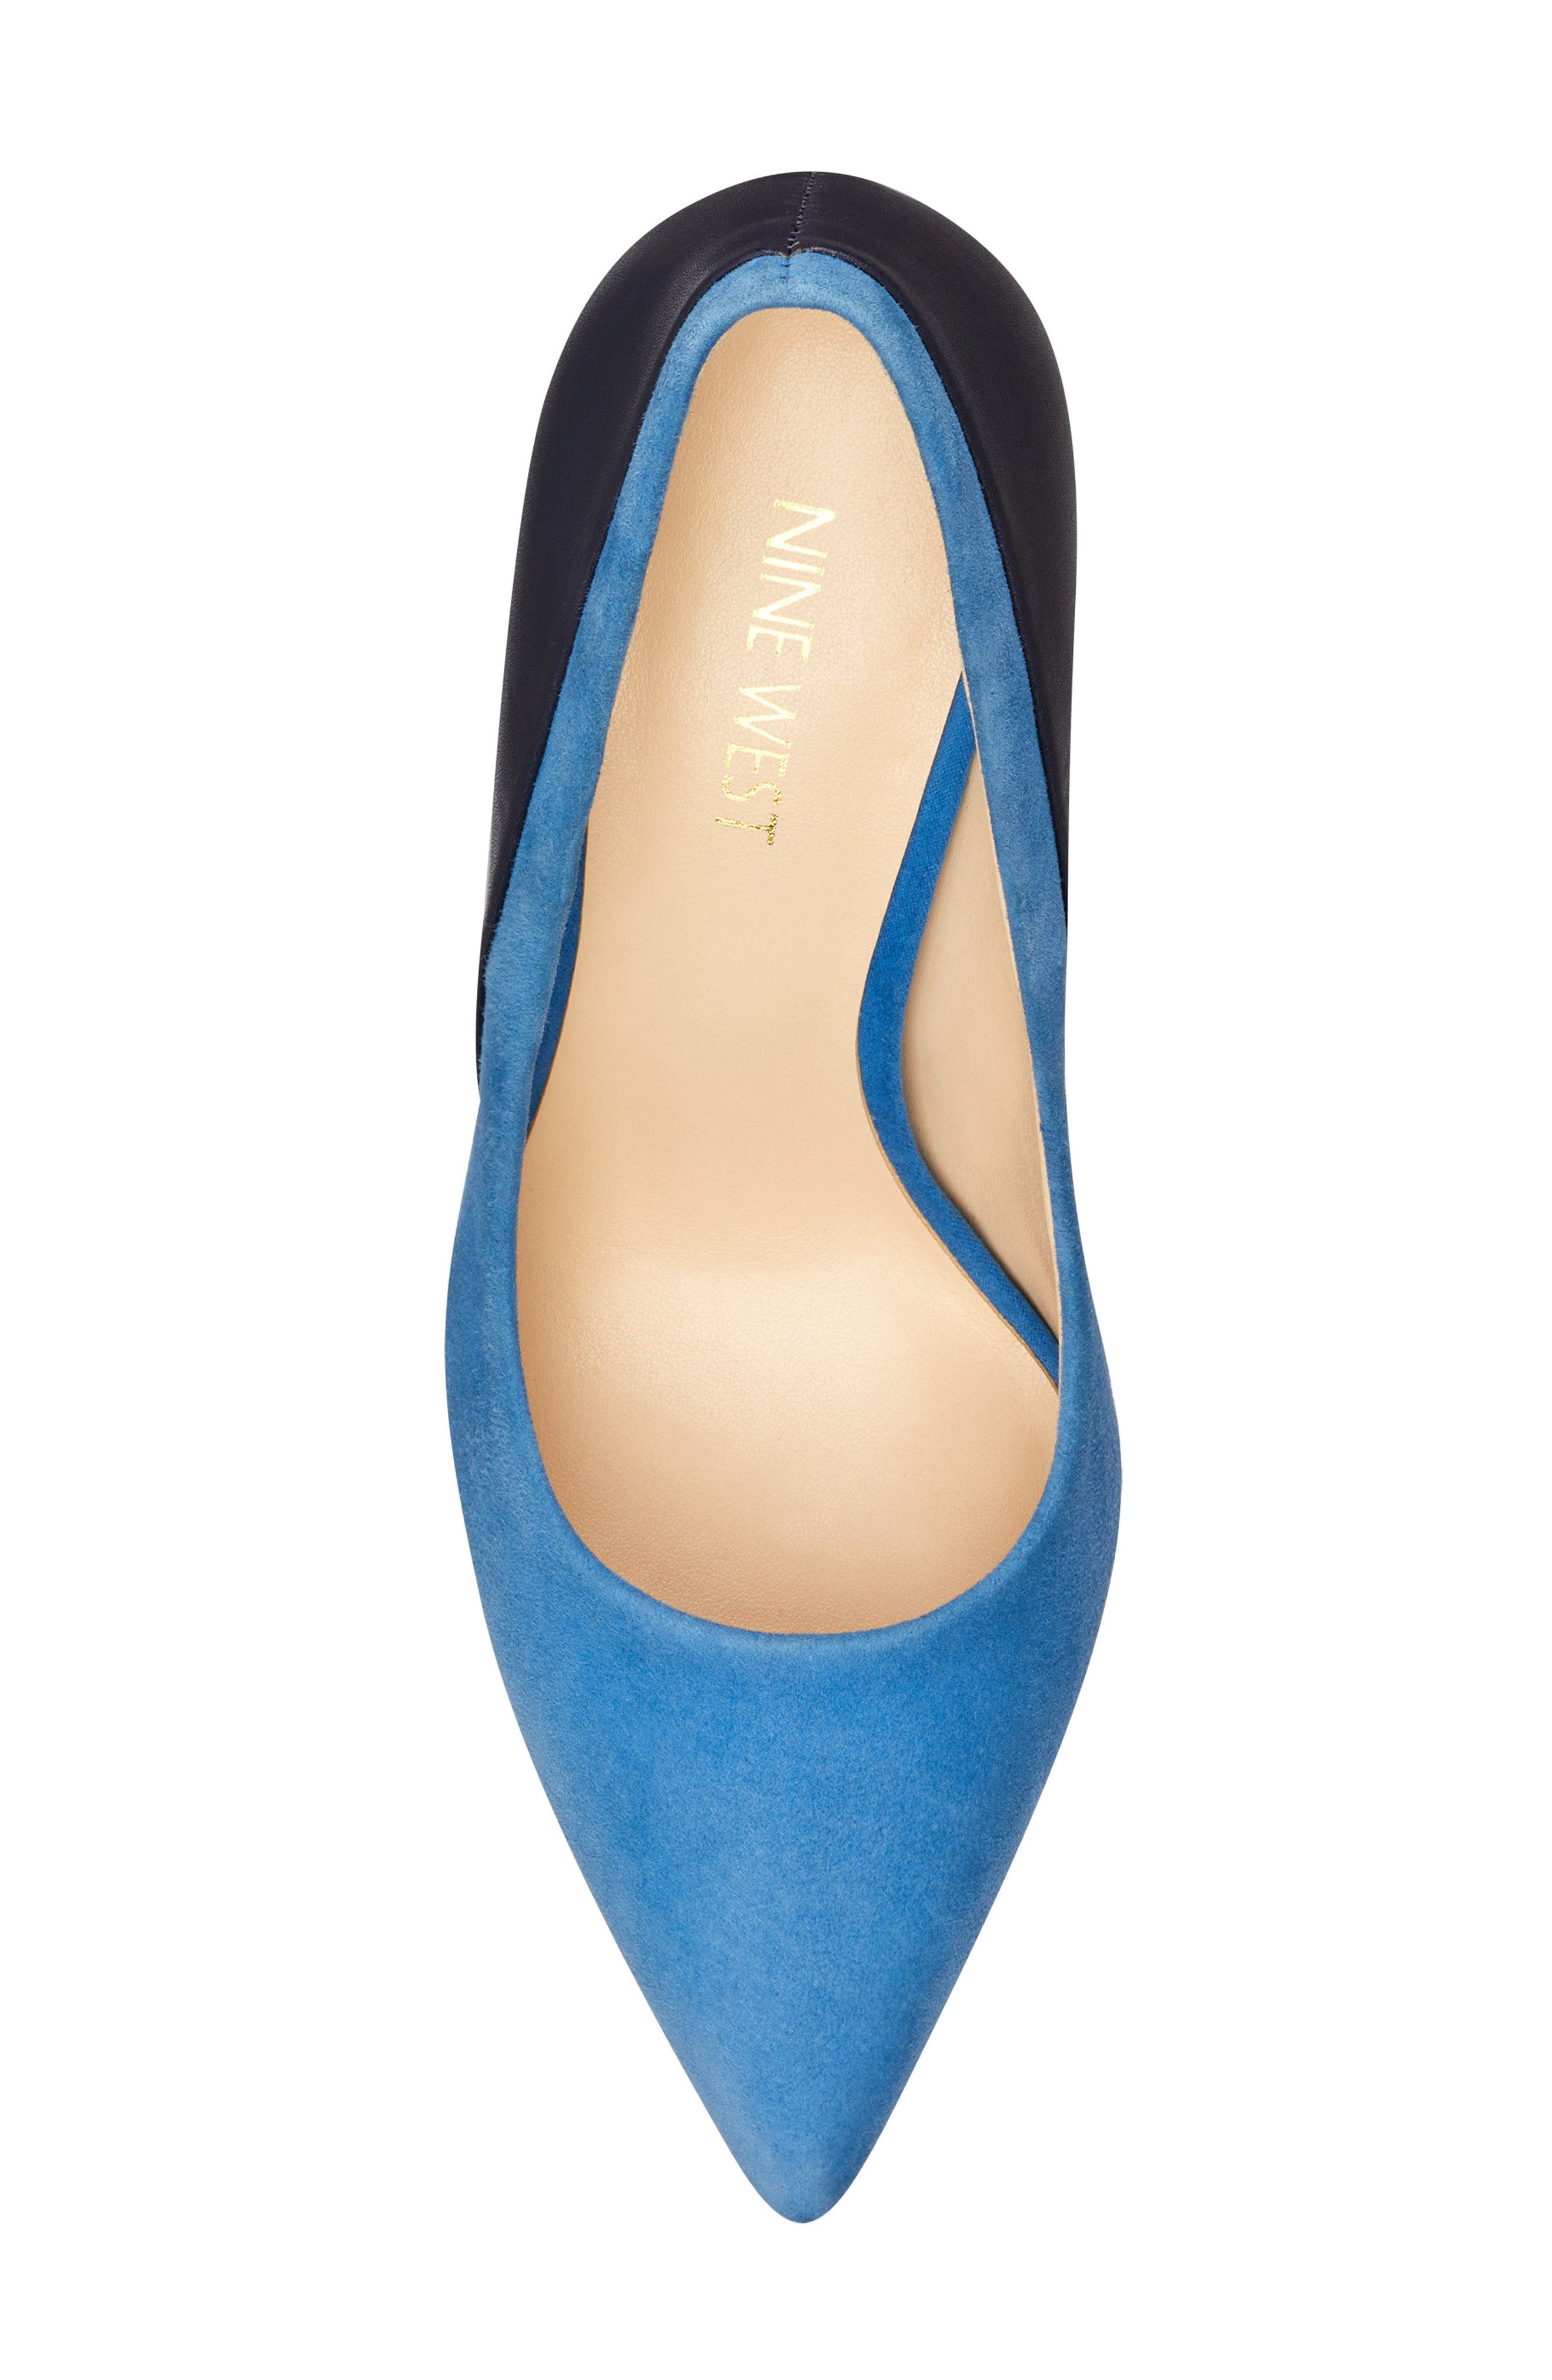 Taymra Pointy Toe Pump,                             Alternate thumbnail 5, color,                             BLUE/ NAVY SUEDE